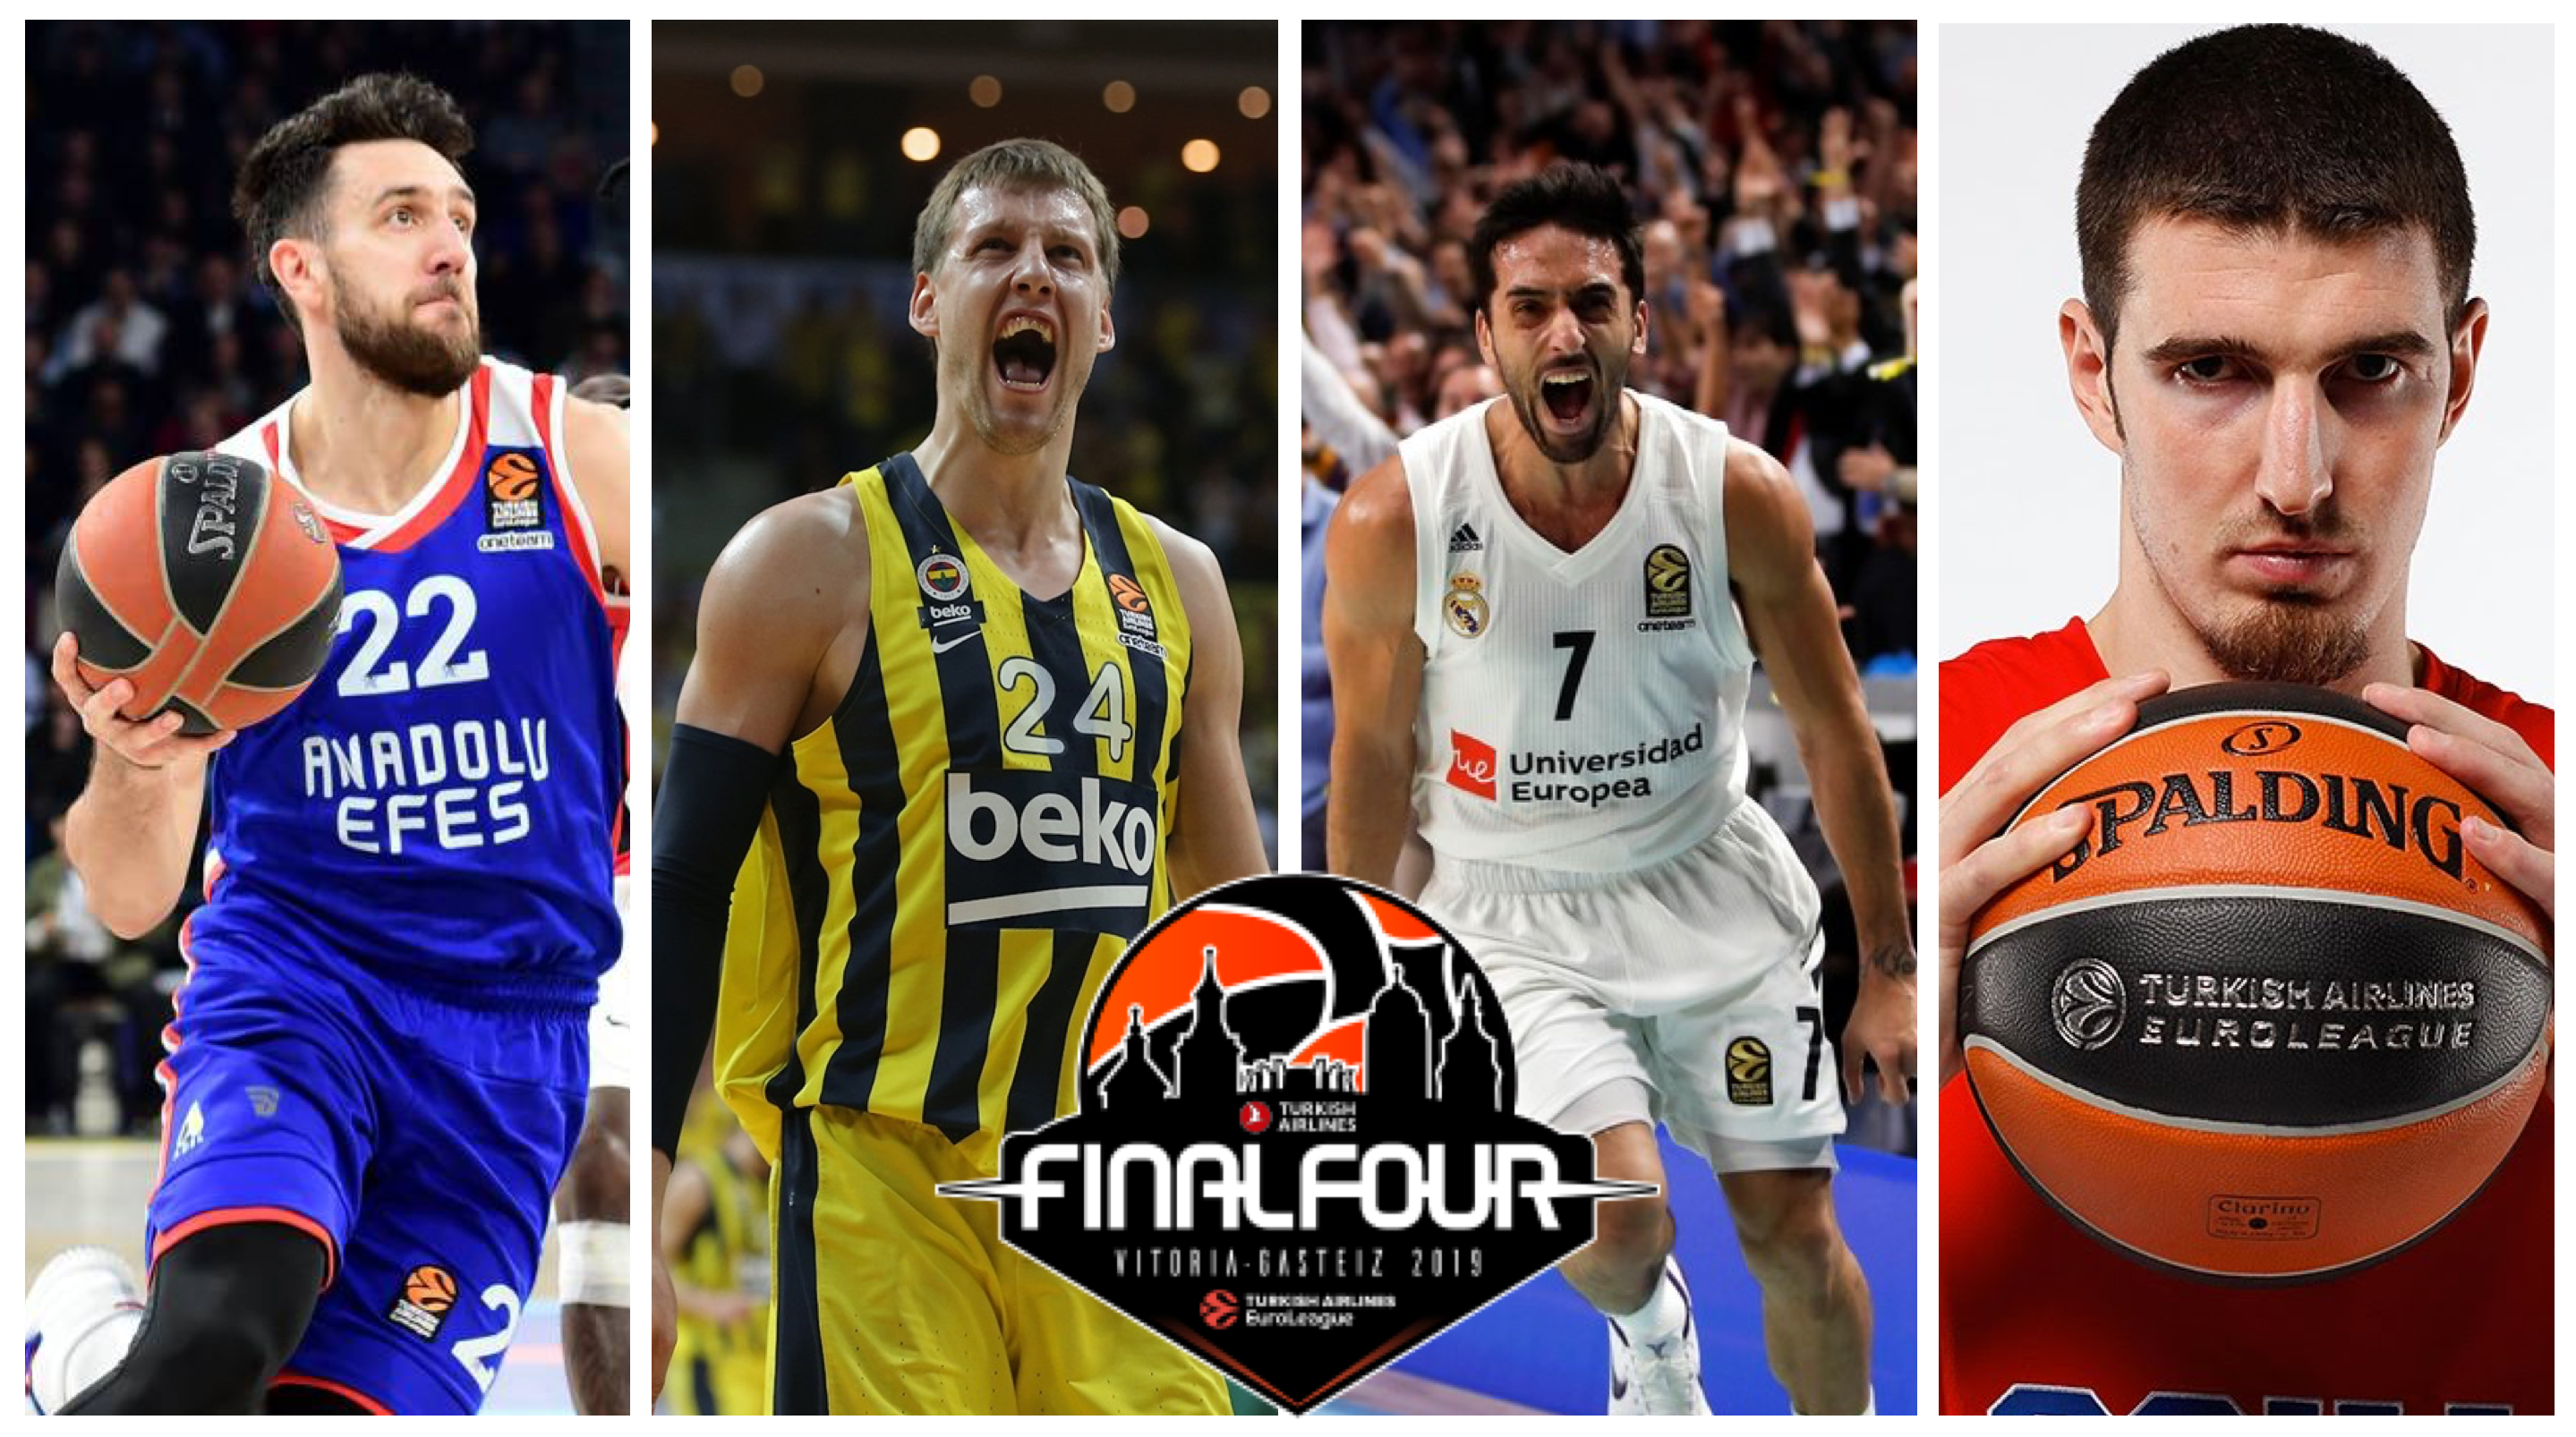 Final Four Vitoria Euroleague De Colo Campazzo Vesely Micic